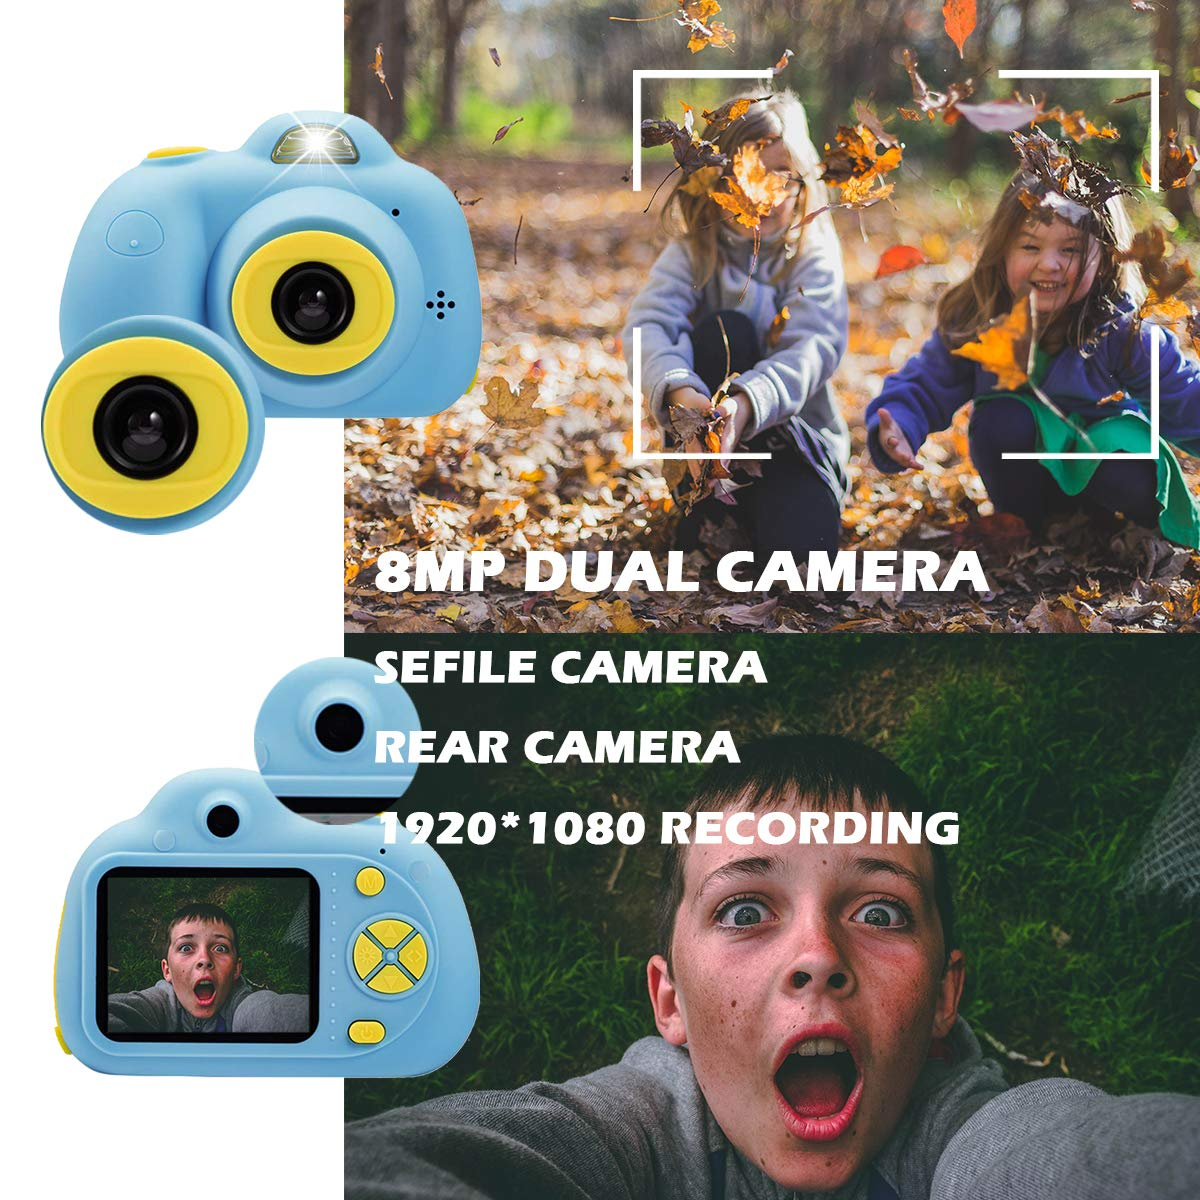 KIDOVE Kids Toys Fun Camera, Waterproof & Shockproof Child Selfie digital game Camcorder, 8MP 1080P dual camera Video Recorder, Creative Birthday Gifts for girls and boys, 16GB TF Card Included (Blue) by KIDOVE (Image #2)